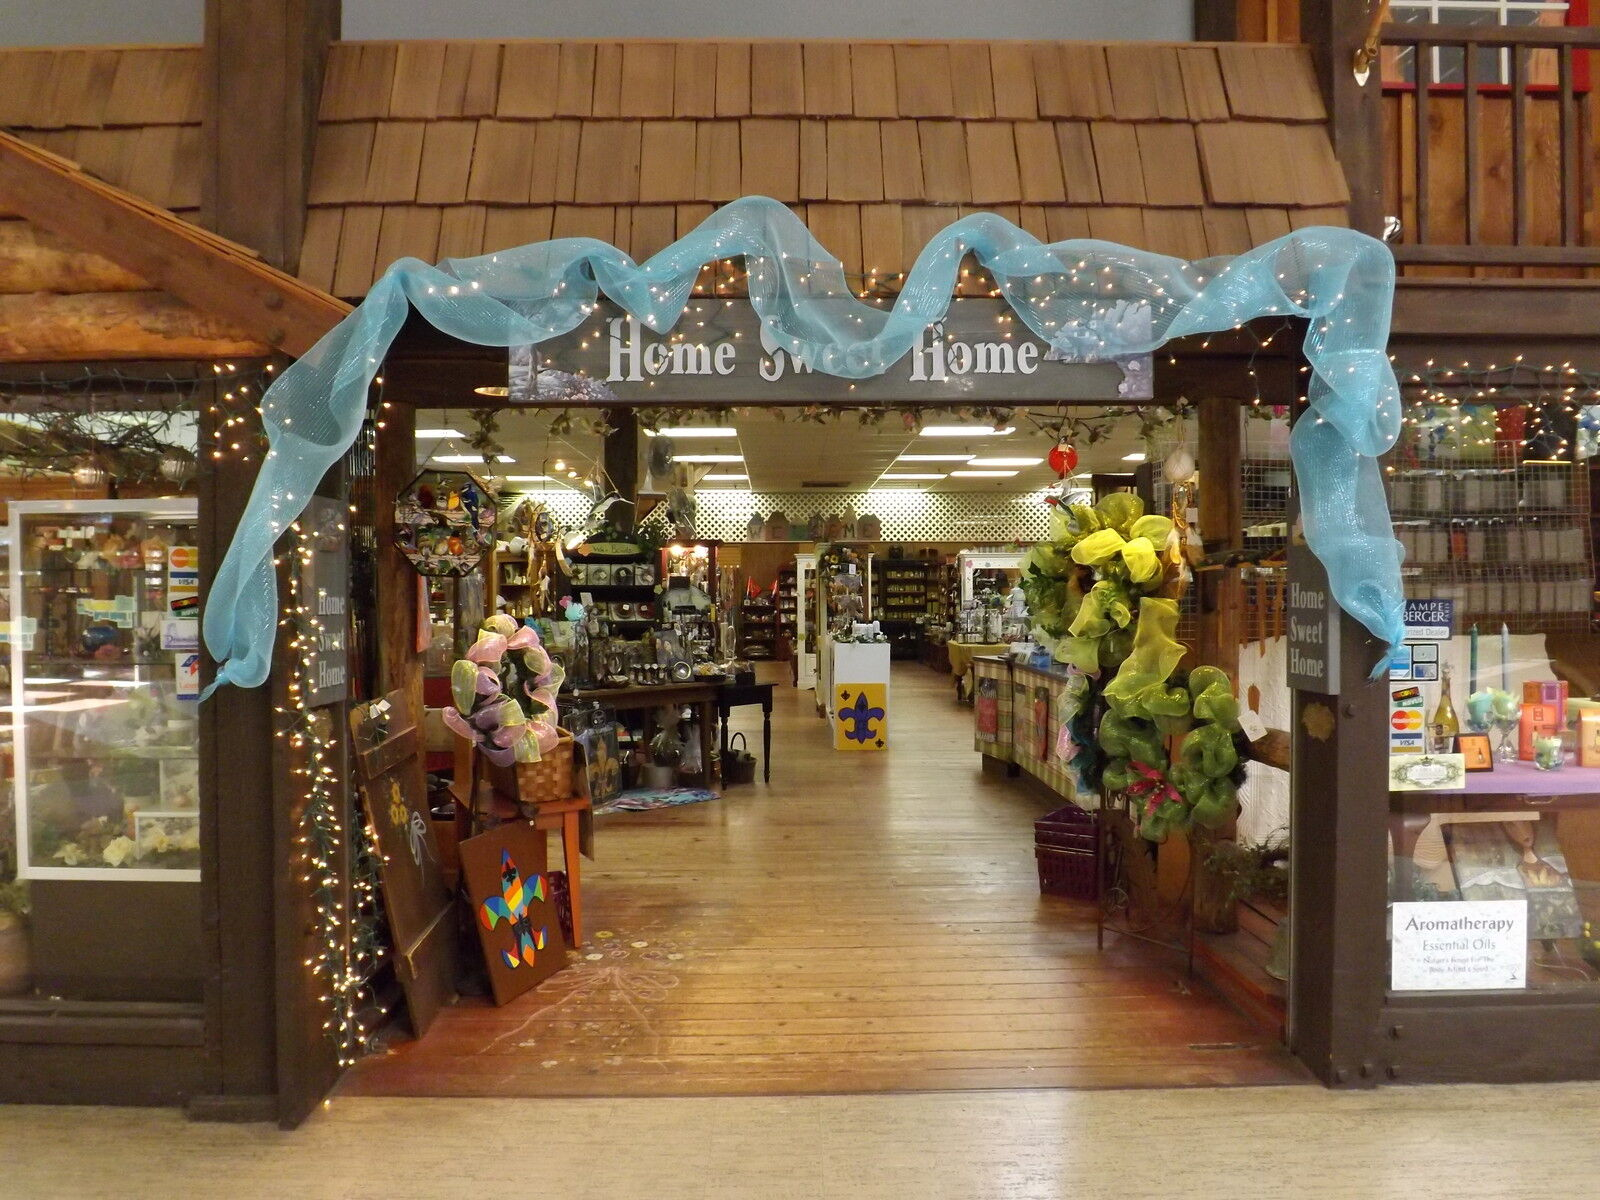 Home Sweet Home Fragrances and More